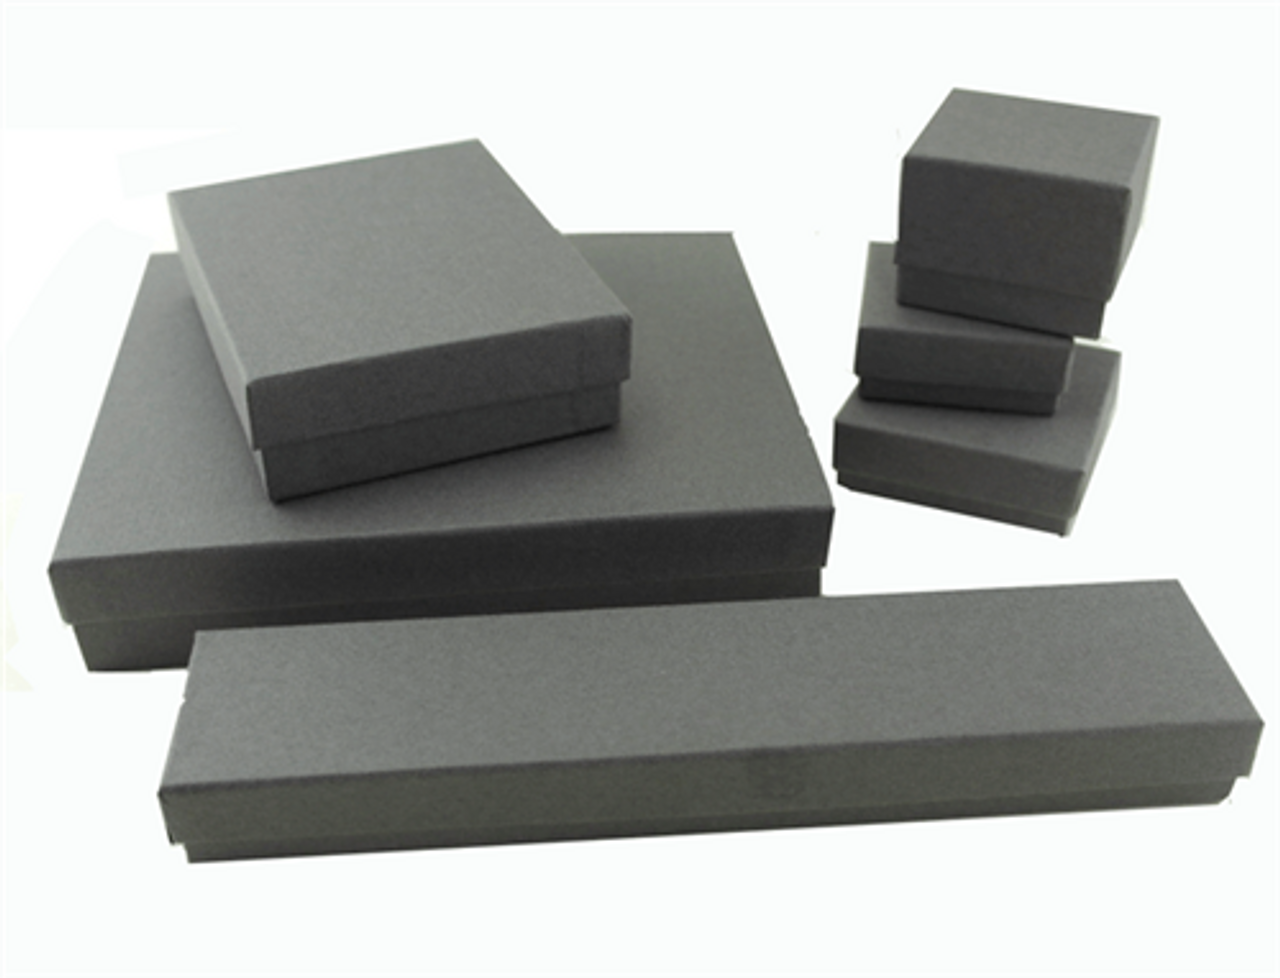 Classic Grey Textured Paper 2 Piece Earring Box 1